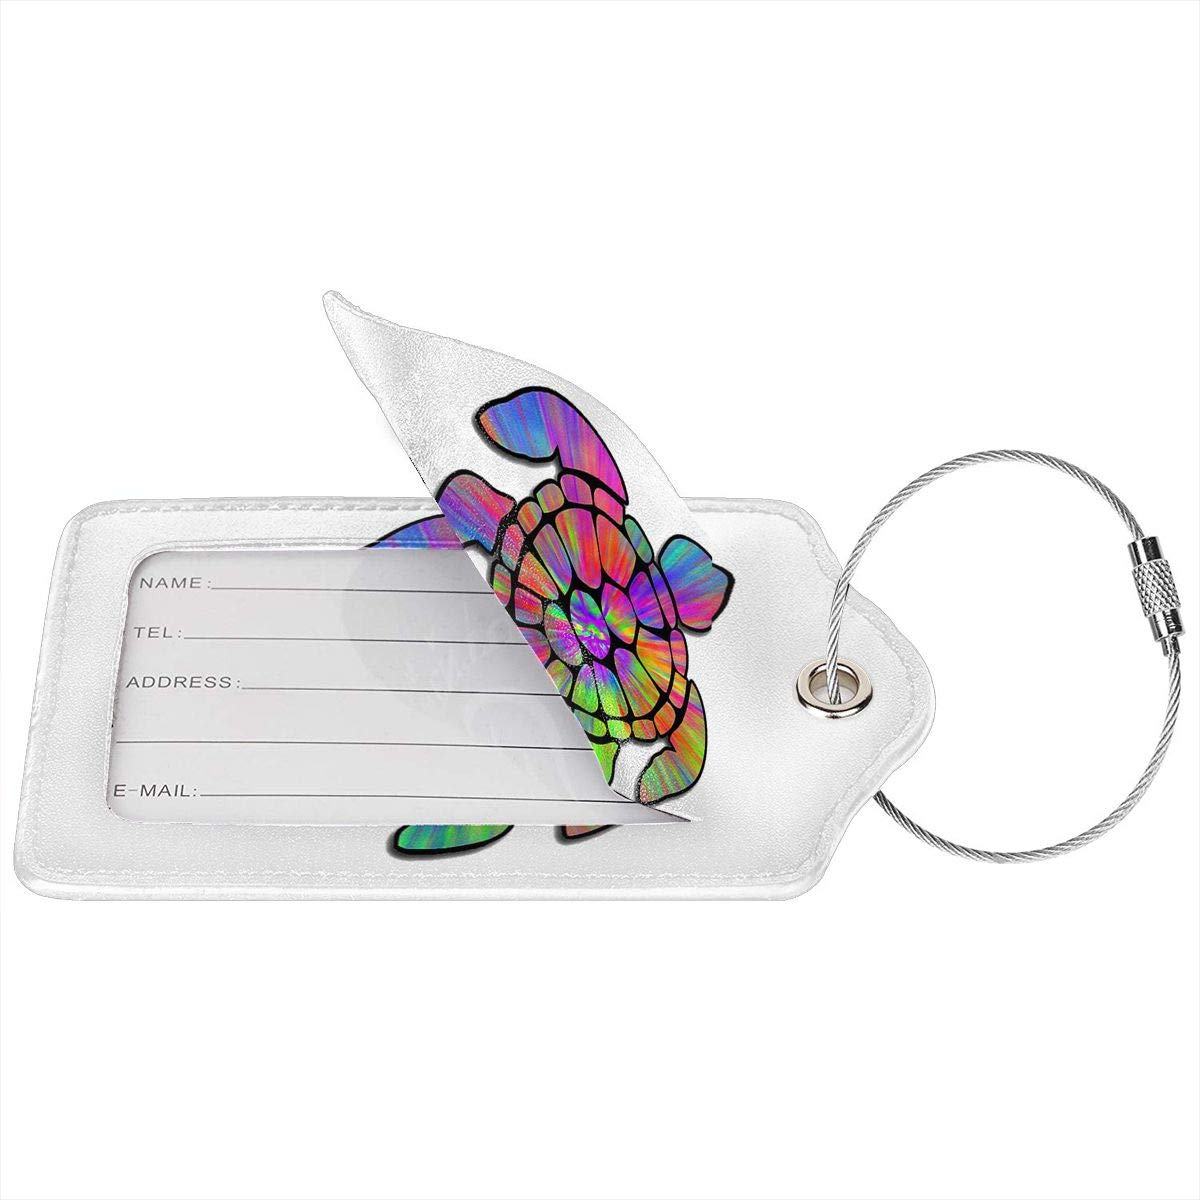 Tie Dye Cool Sea Turtle Leather Luggage Tag Travel ID Label For Baggage Suitcase